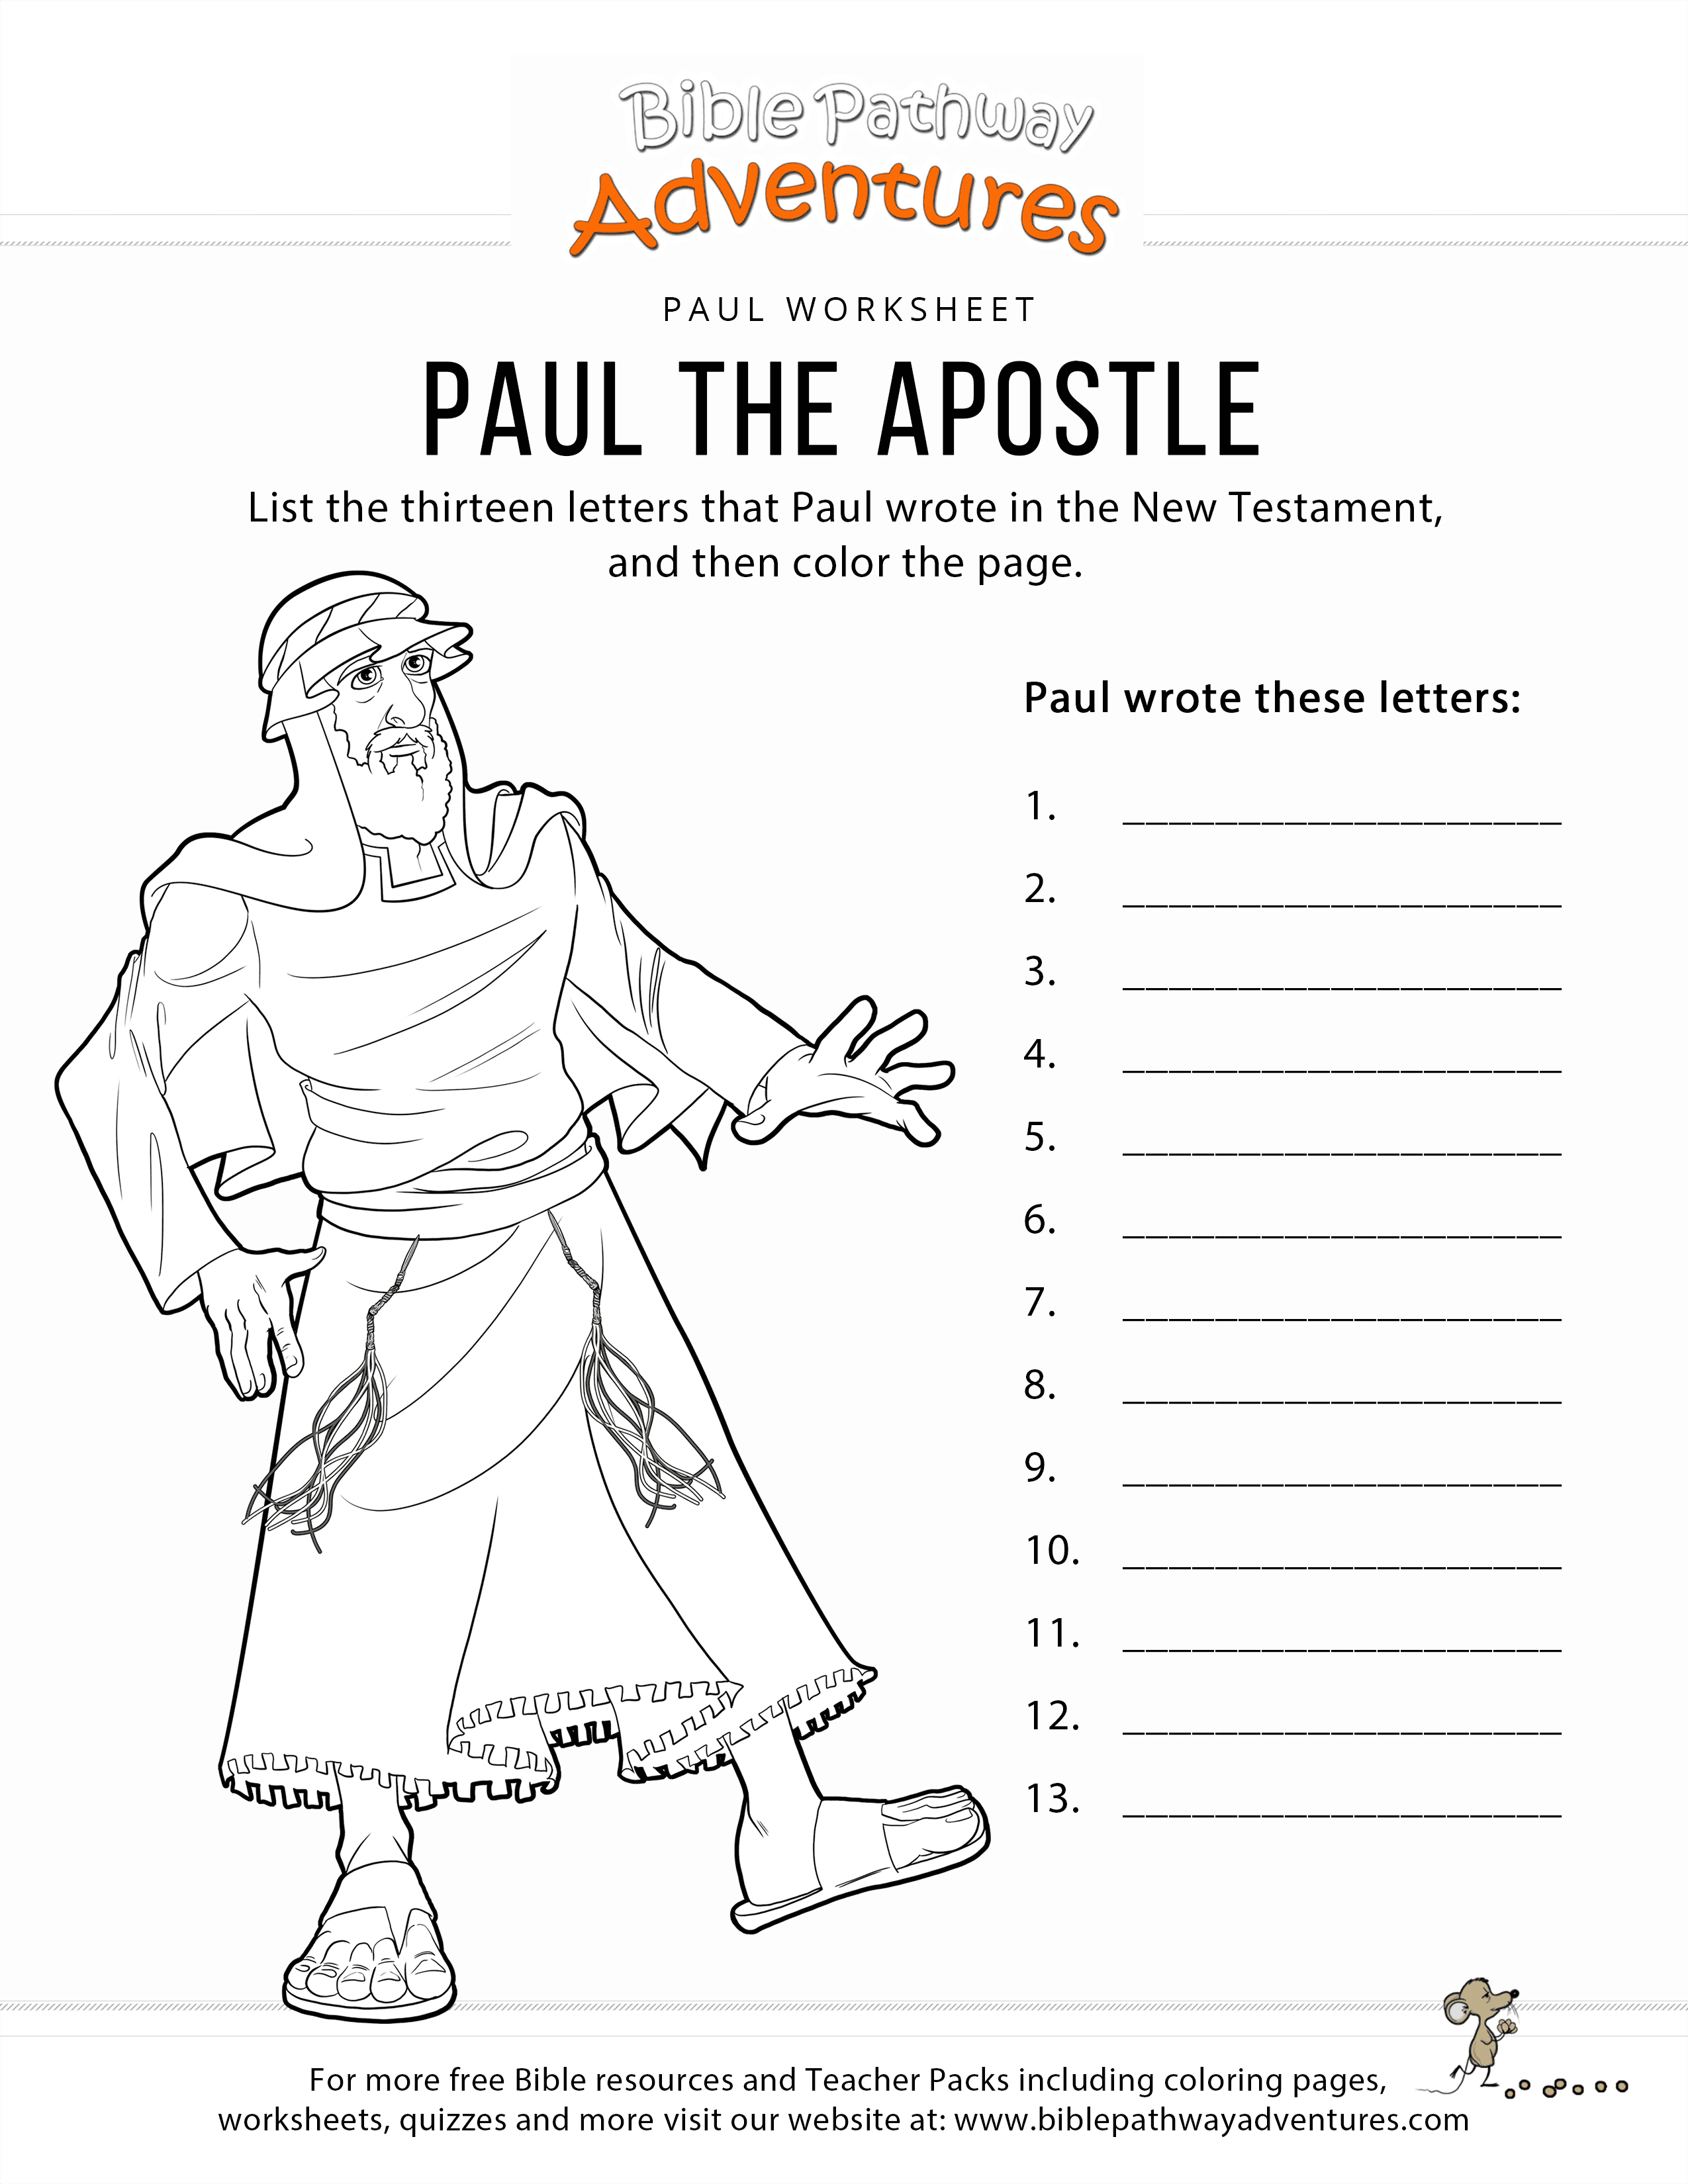 Paul Coloring Pages Paul The Apostle Worksheet Coloring Page Bible Pathway Adventures